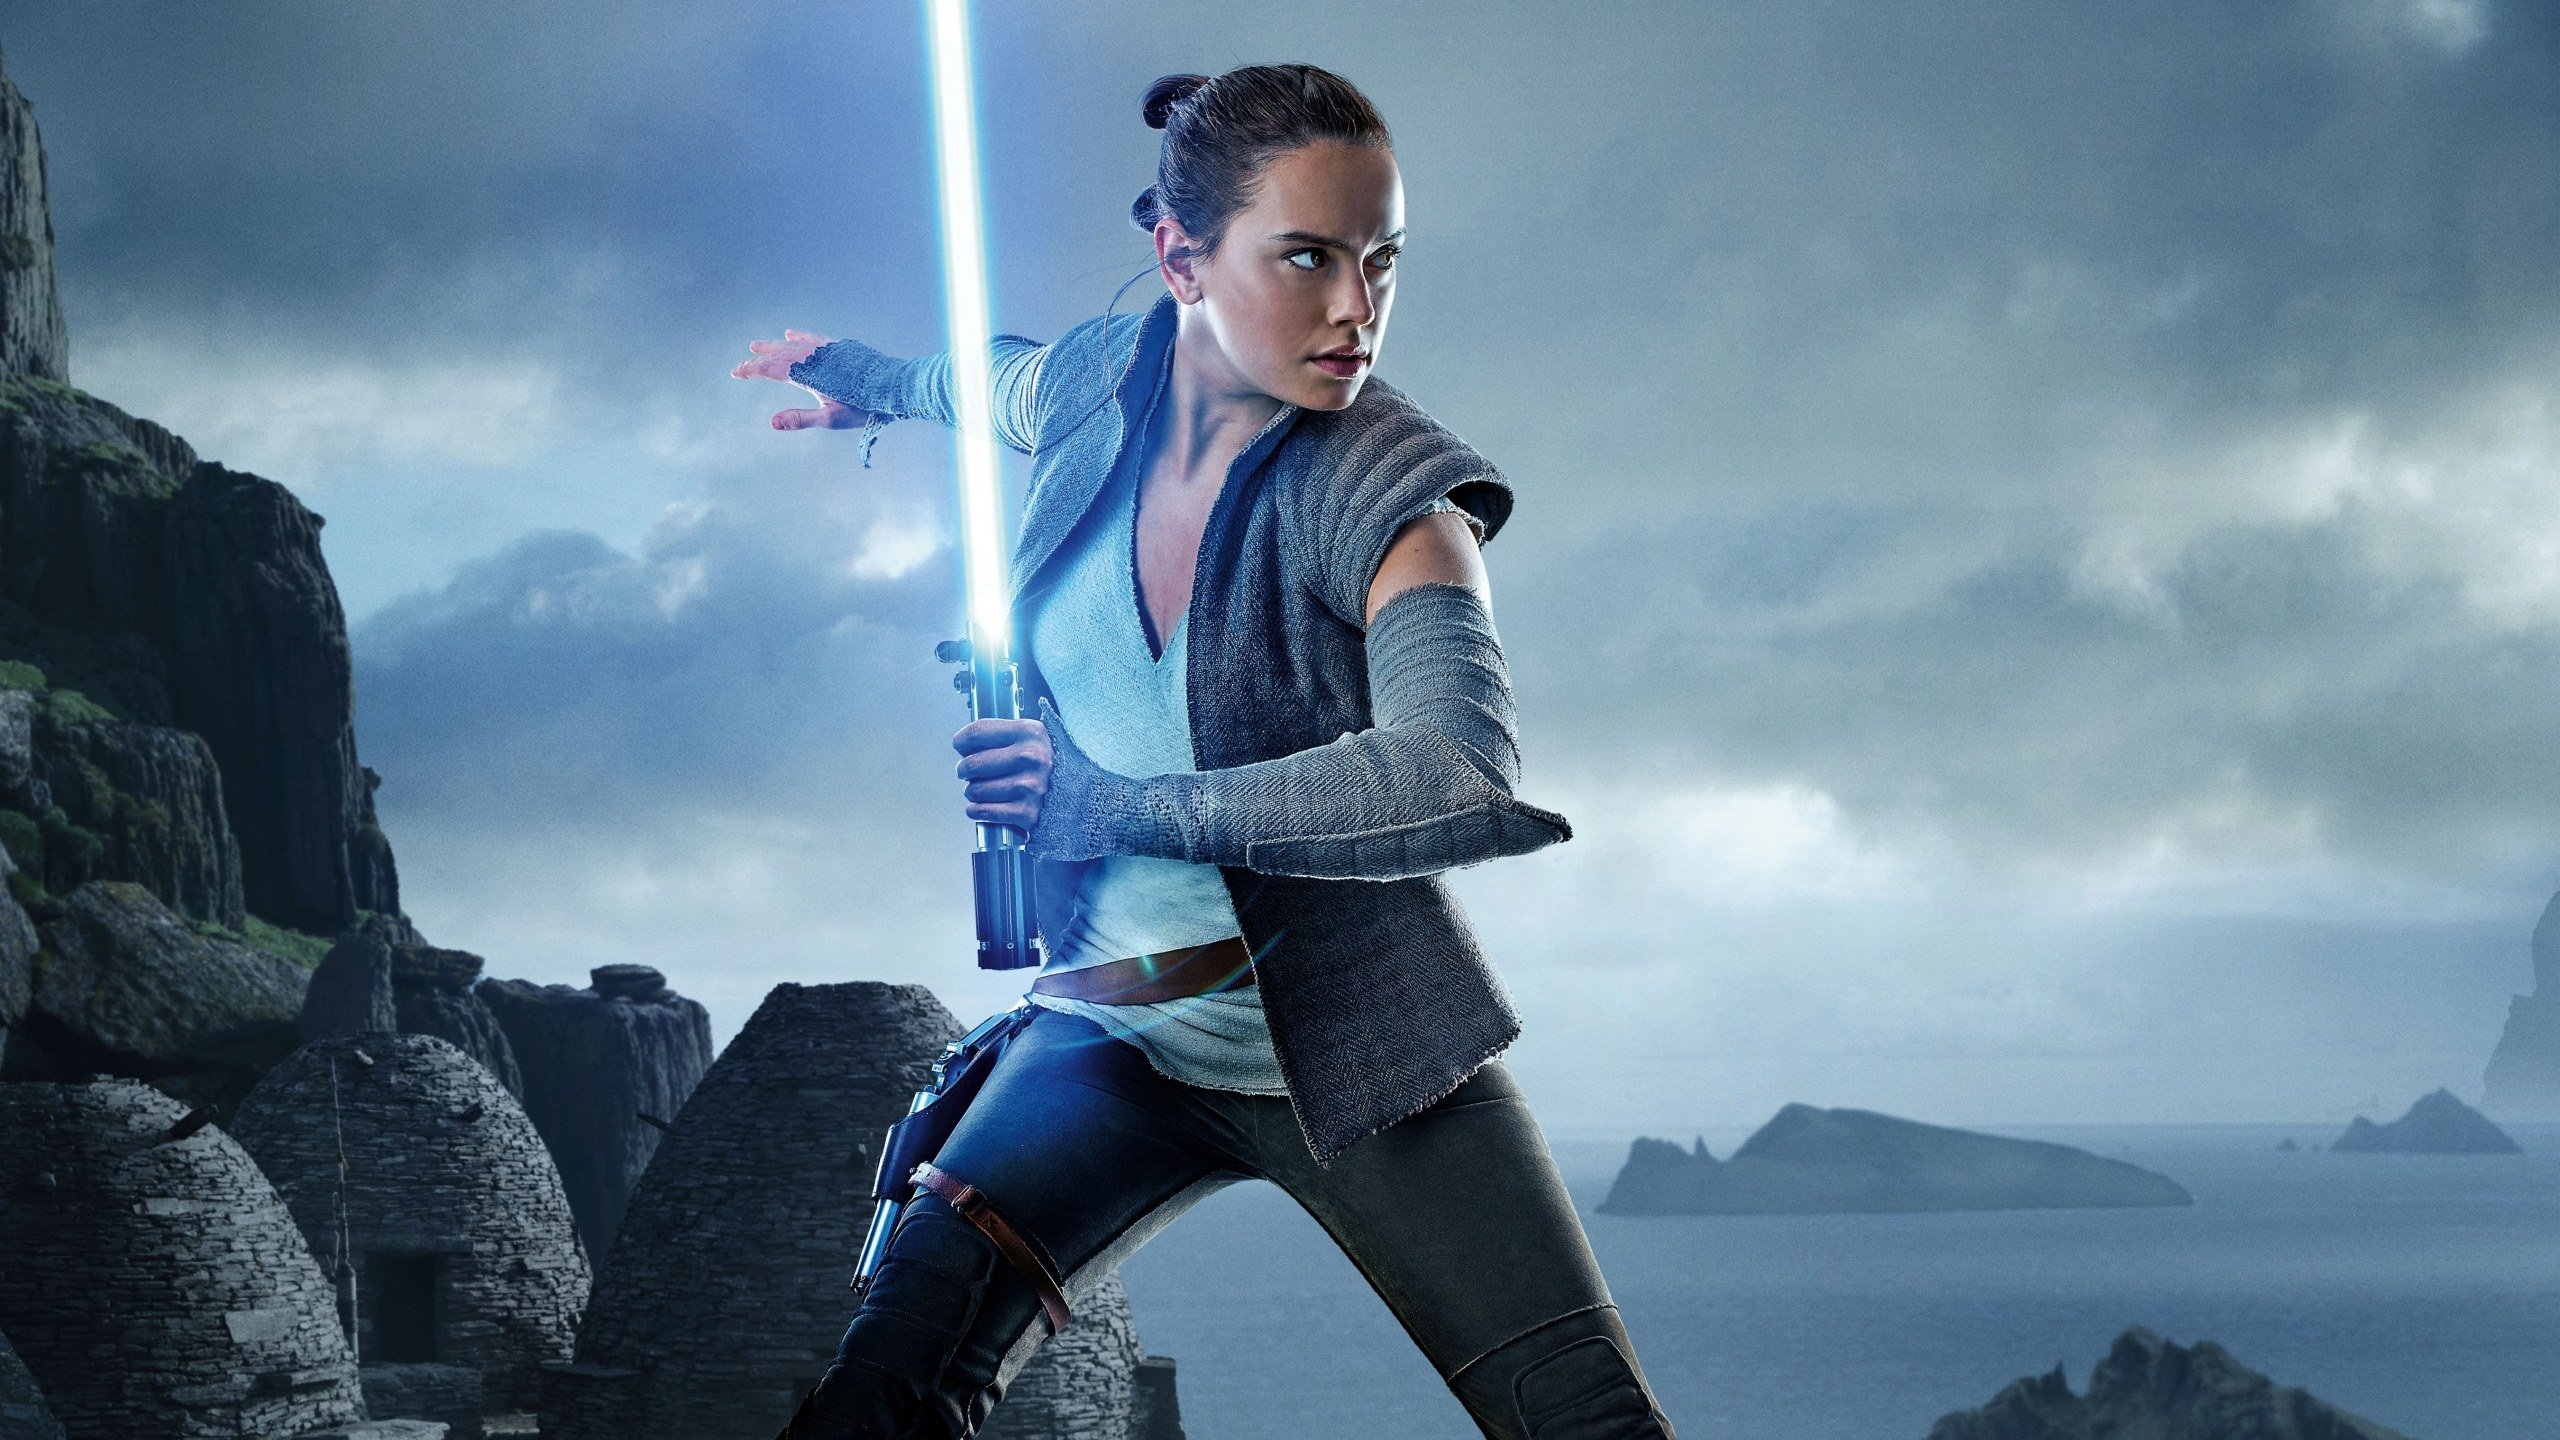 Jedi Wallpapers, Photos And Desktop Backgrounds Up To 8K